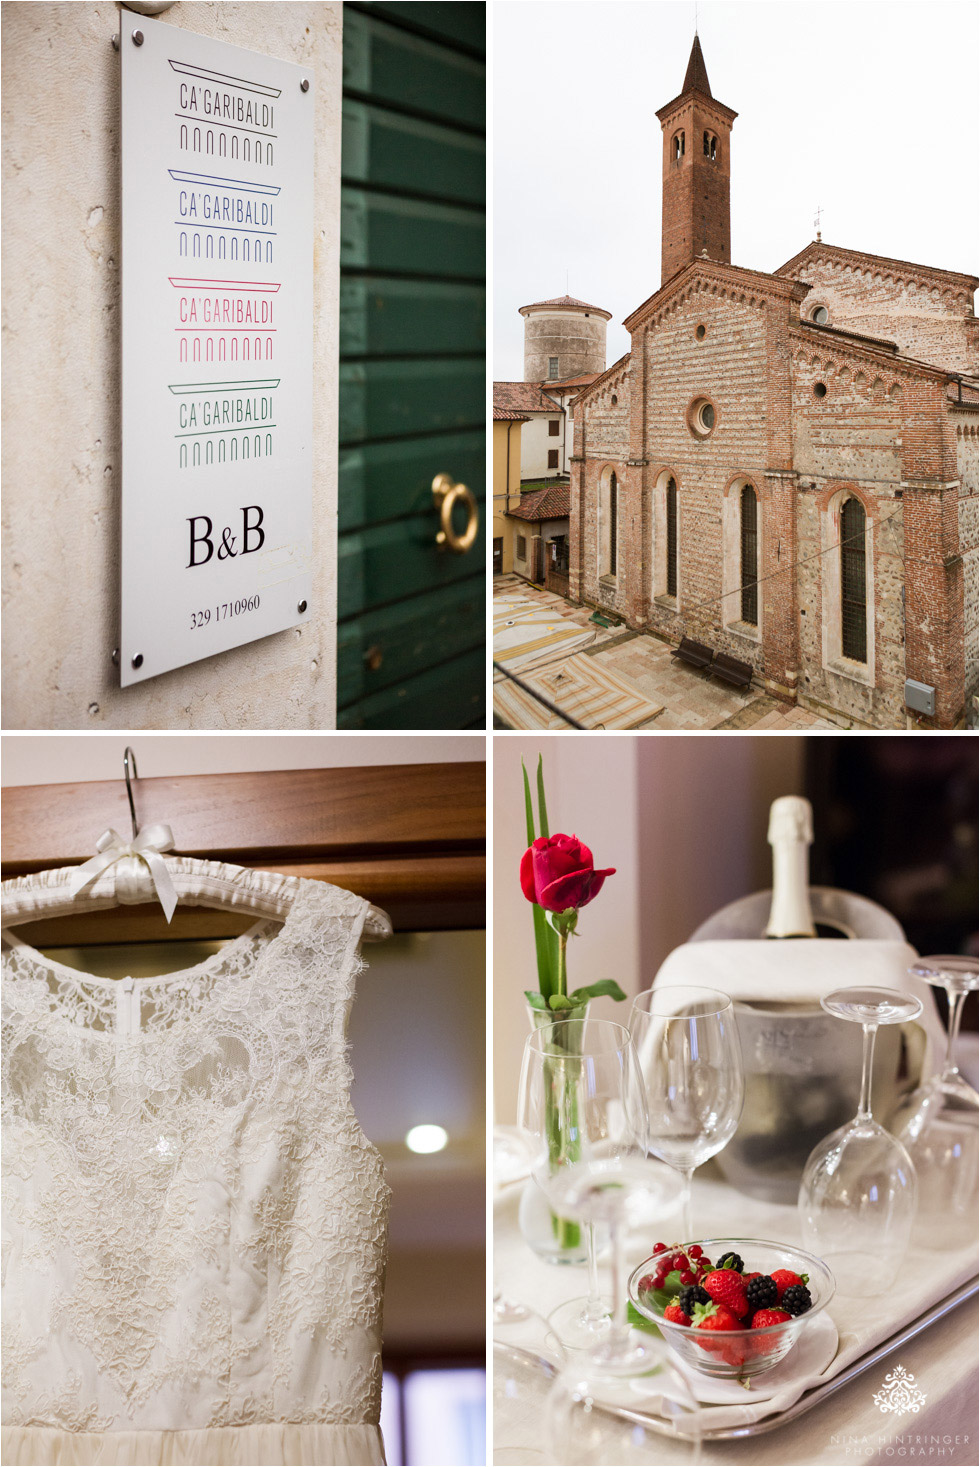 Destination wedding in Bassano del Grappa, Italy - Blog of Nina Hintringer Photography - Wedding Photography, Wedding Reportage and Destination Weddings